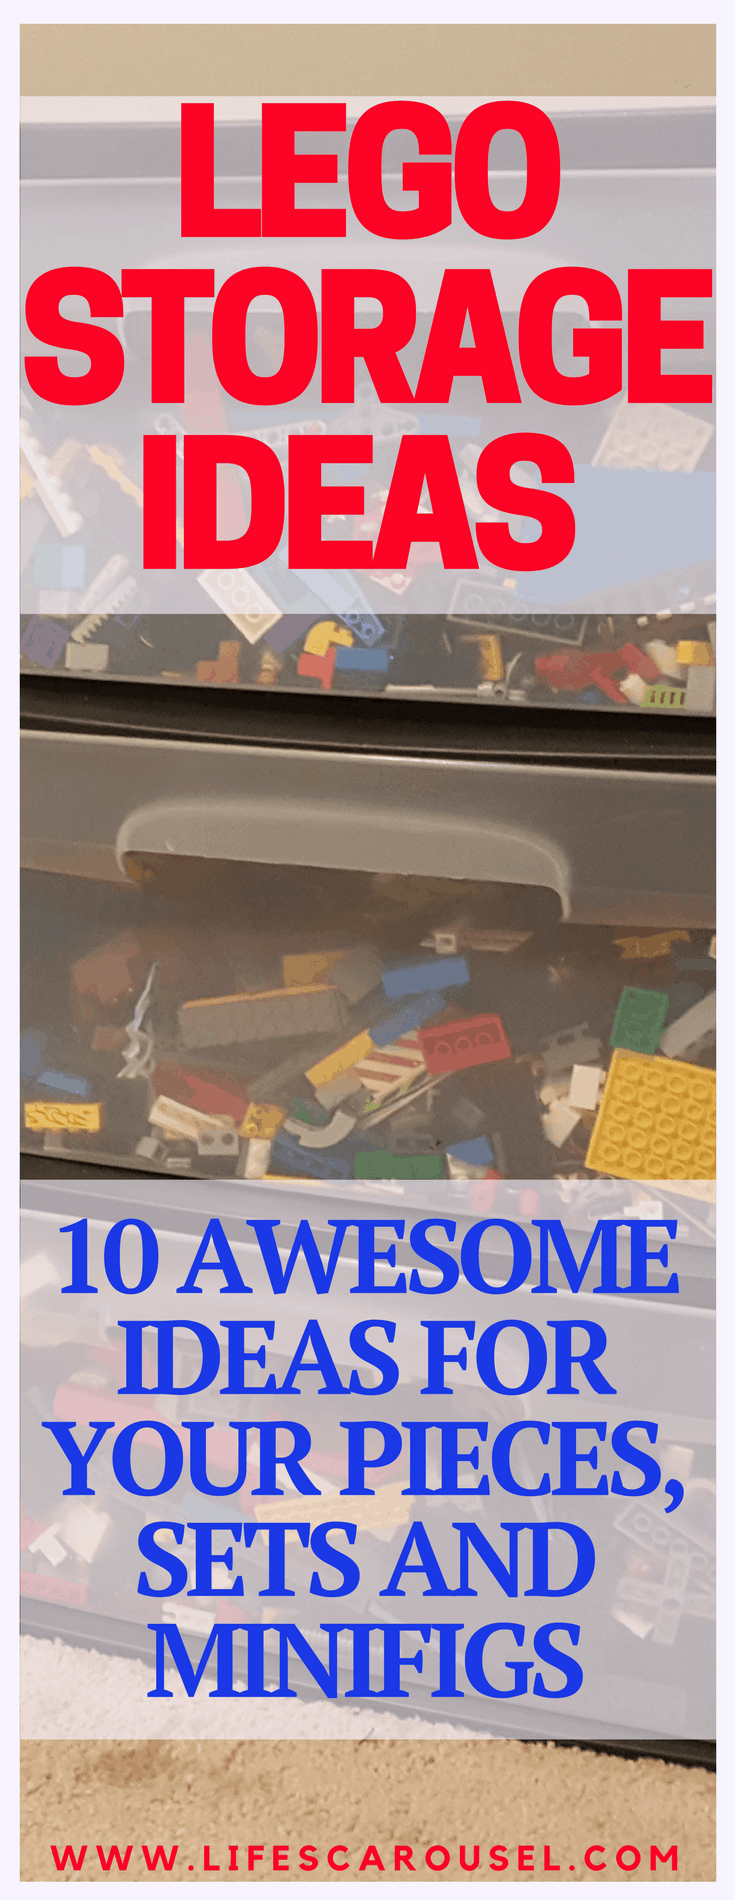 Lego Storage Ideas | Ways to store and display your Lego sets, pieces and minifigures. Lego tables, desks, containers, shelves, under couch or bed ideas.